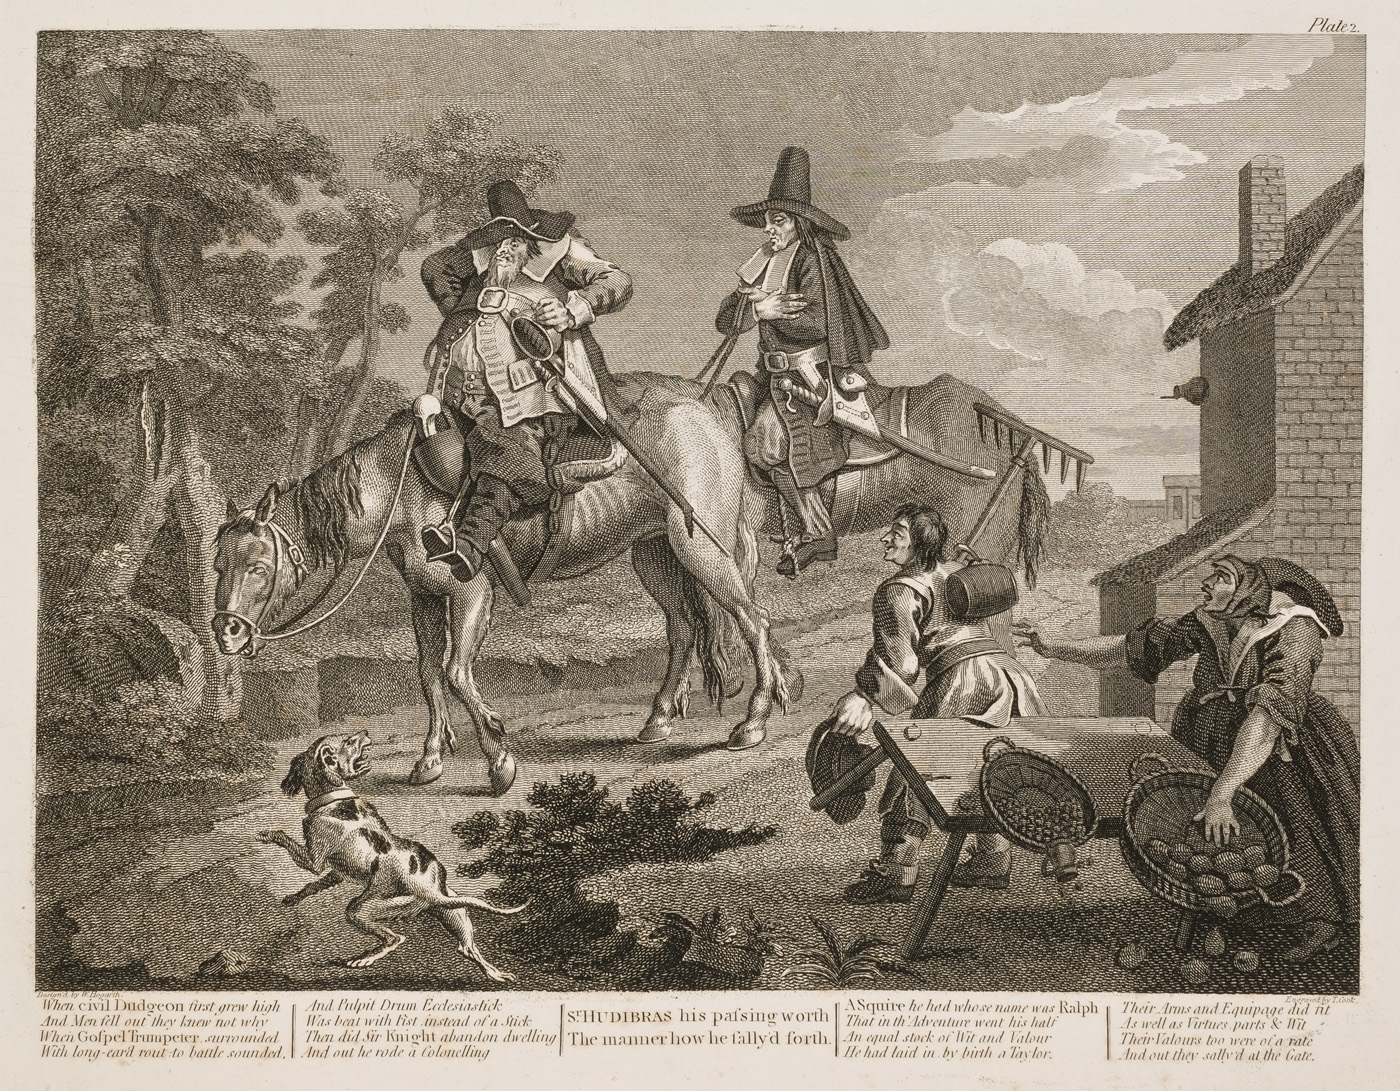 William Hogarth - Hudibras plate 2